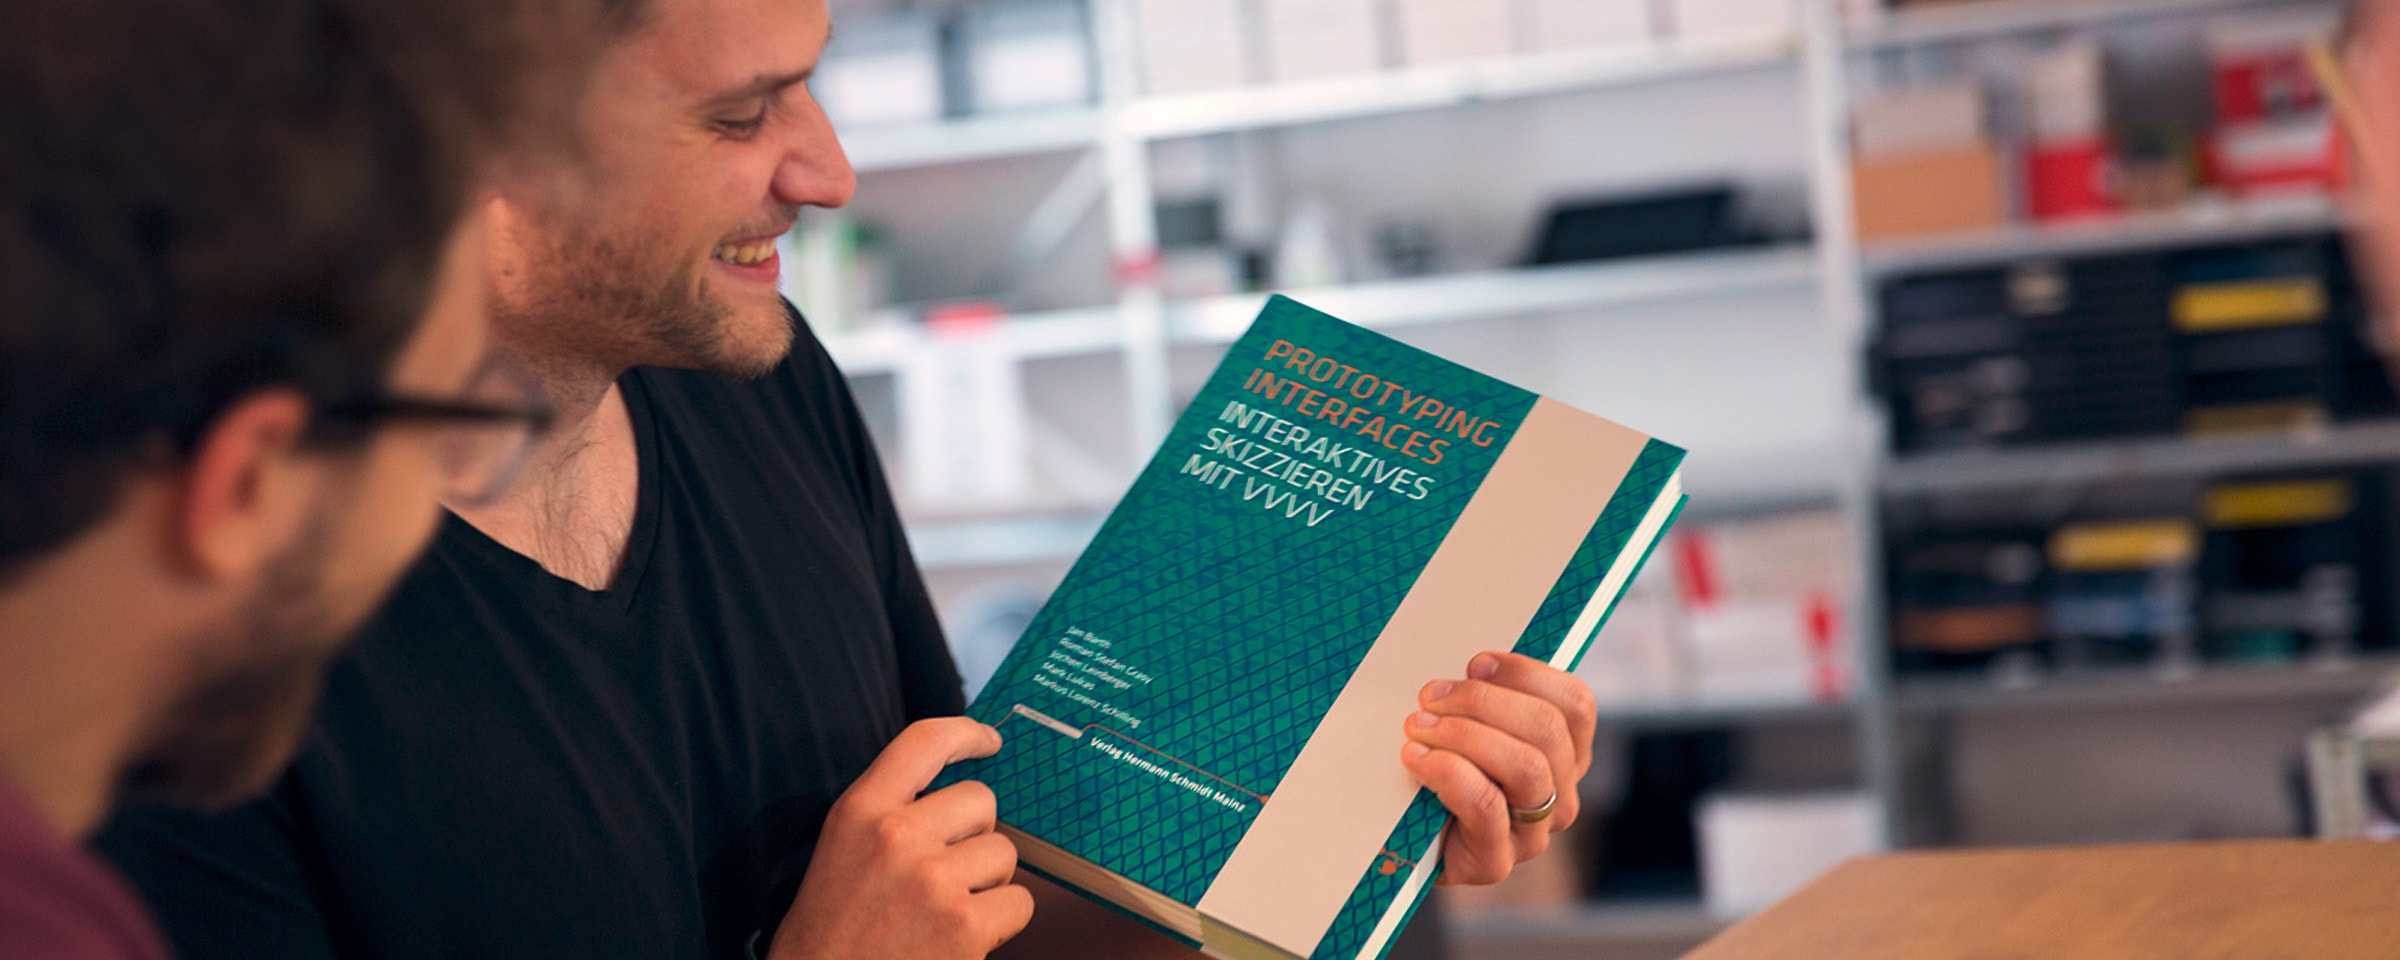 Intuity Fellow Roman präsentiert das Buch Prototyping Interfaces